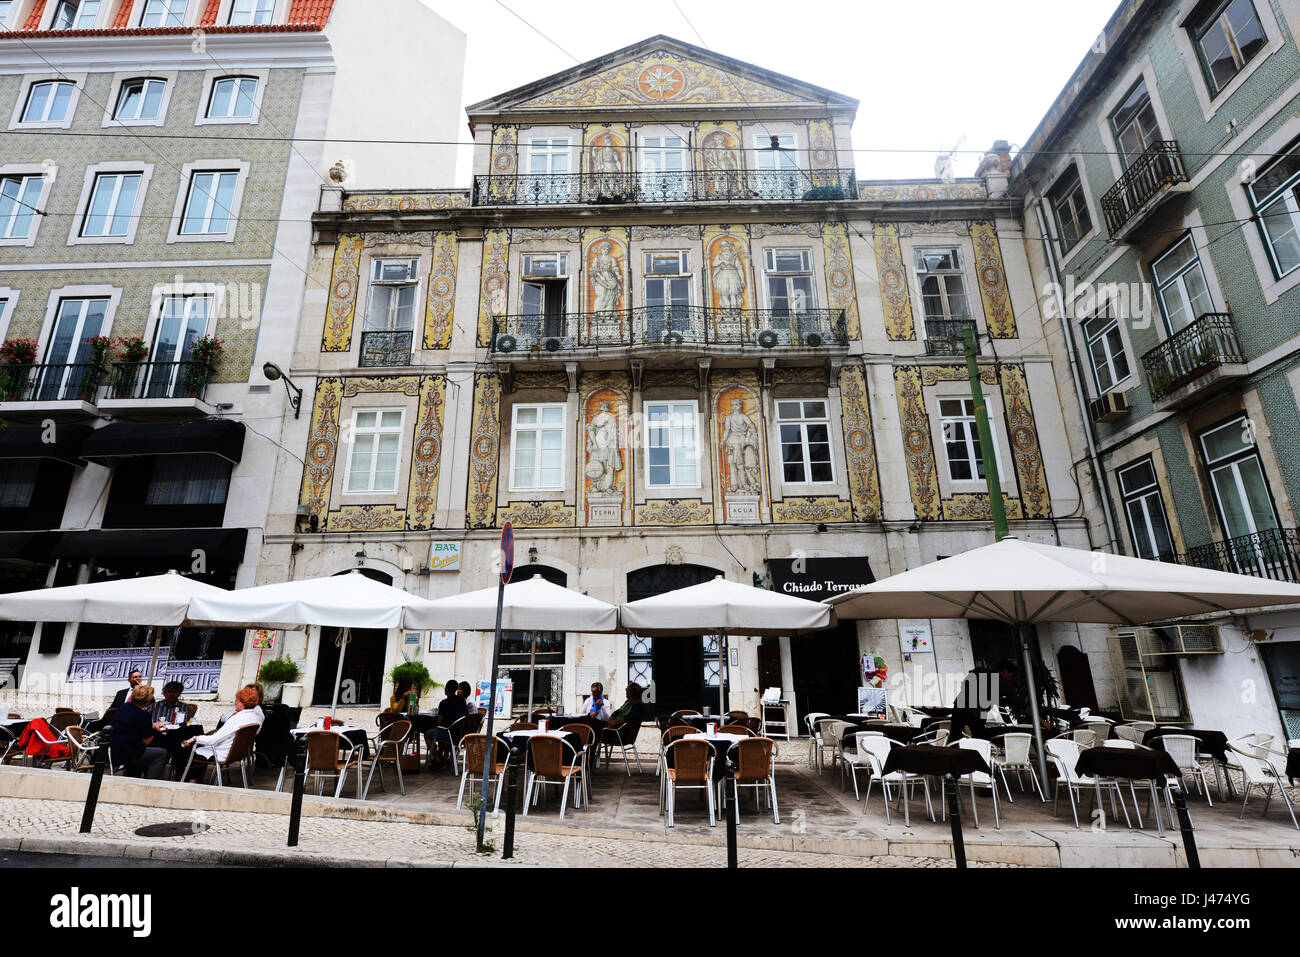 Building with Painted murals in Rua Da Trindade, Lisbon. - Stock Image